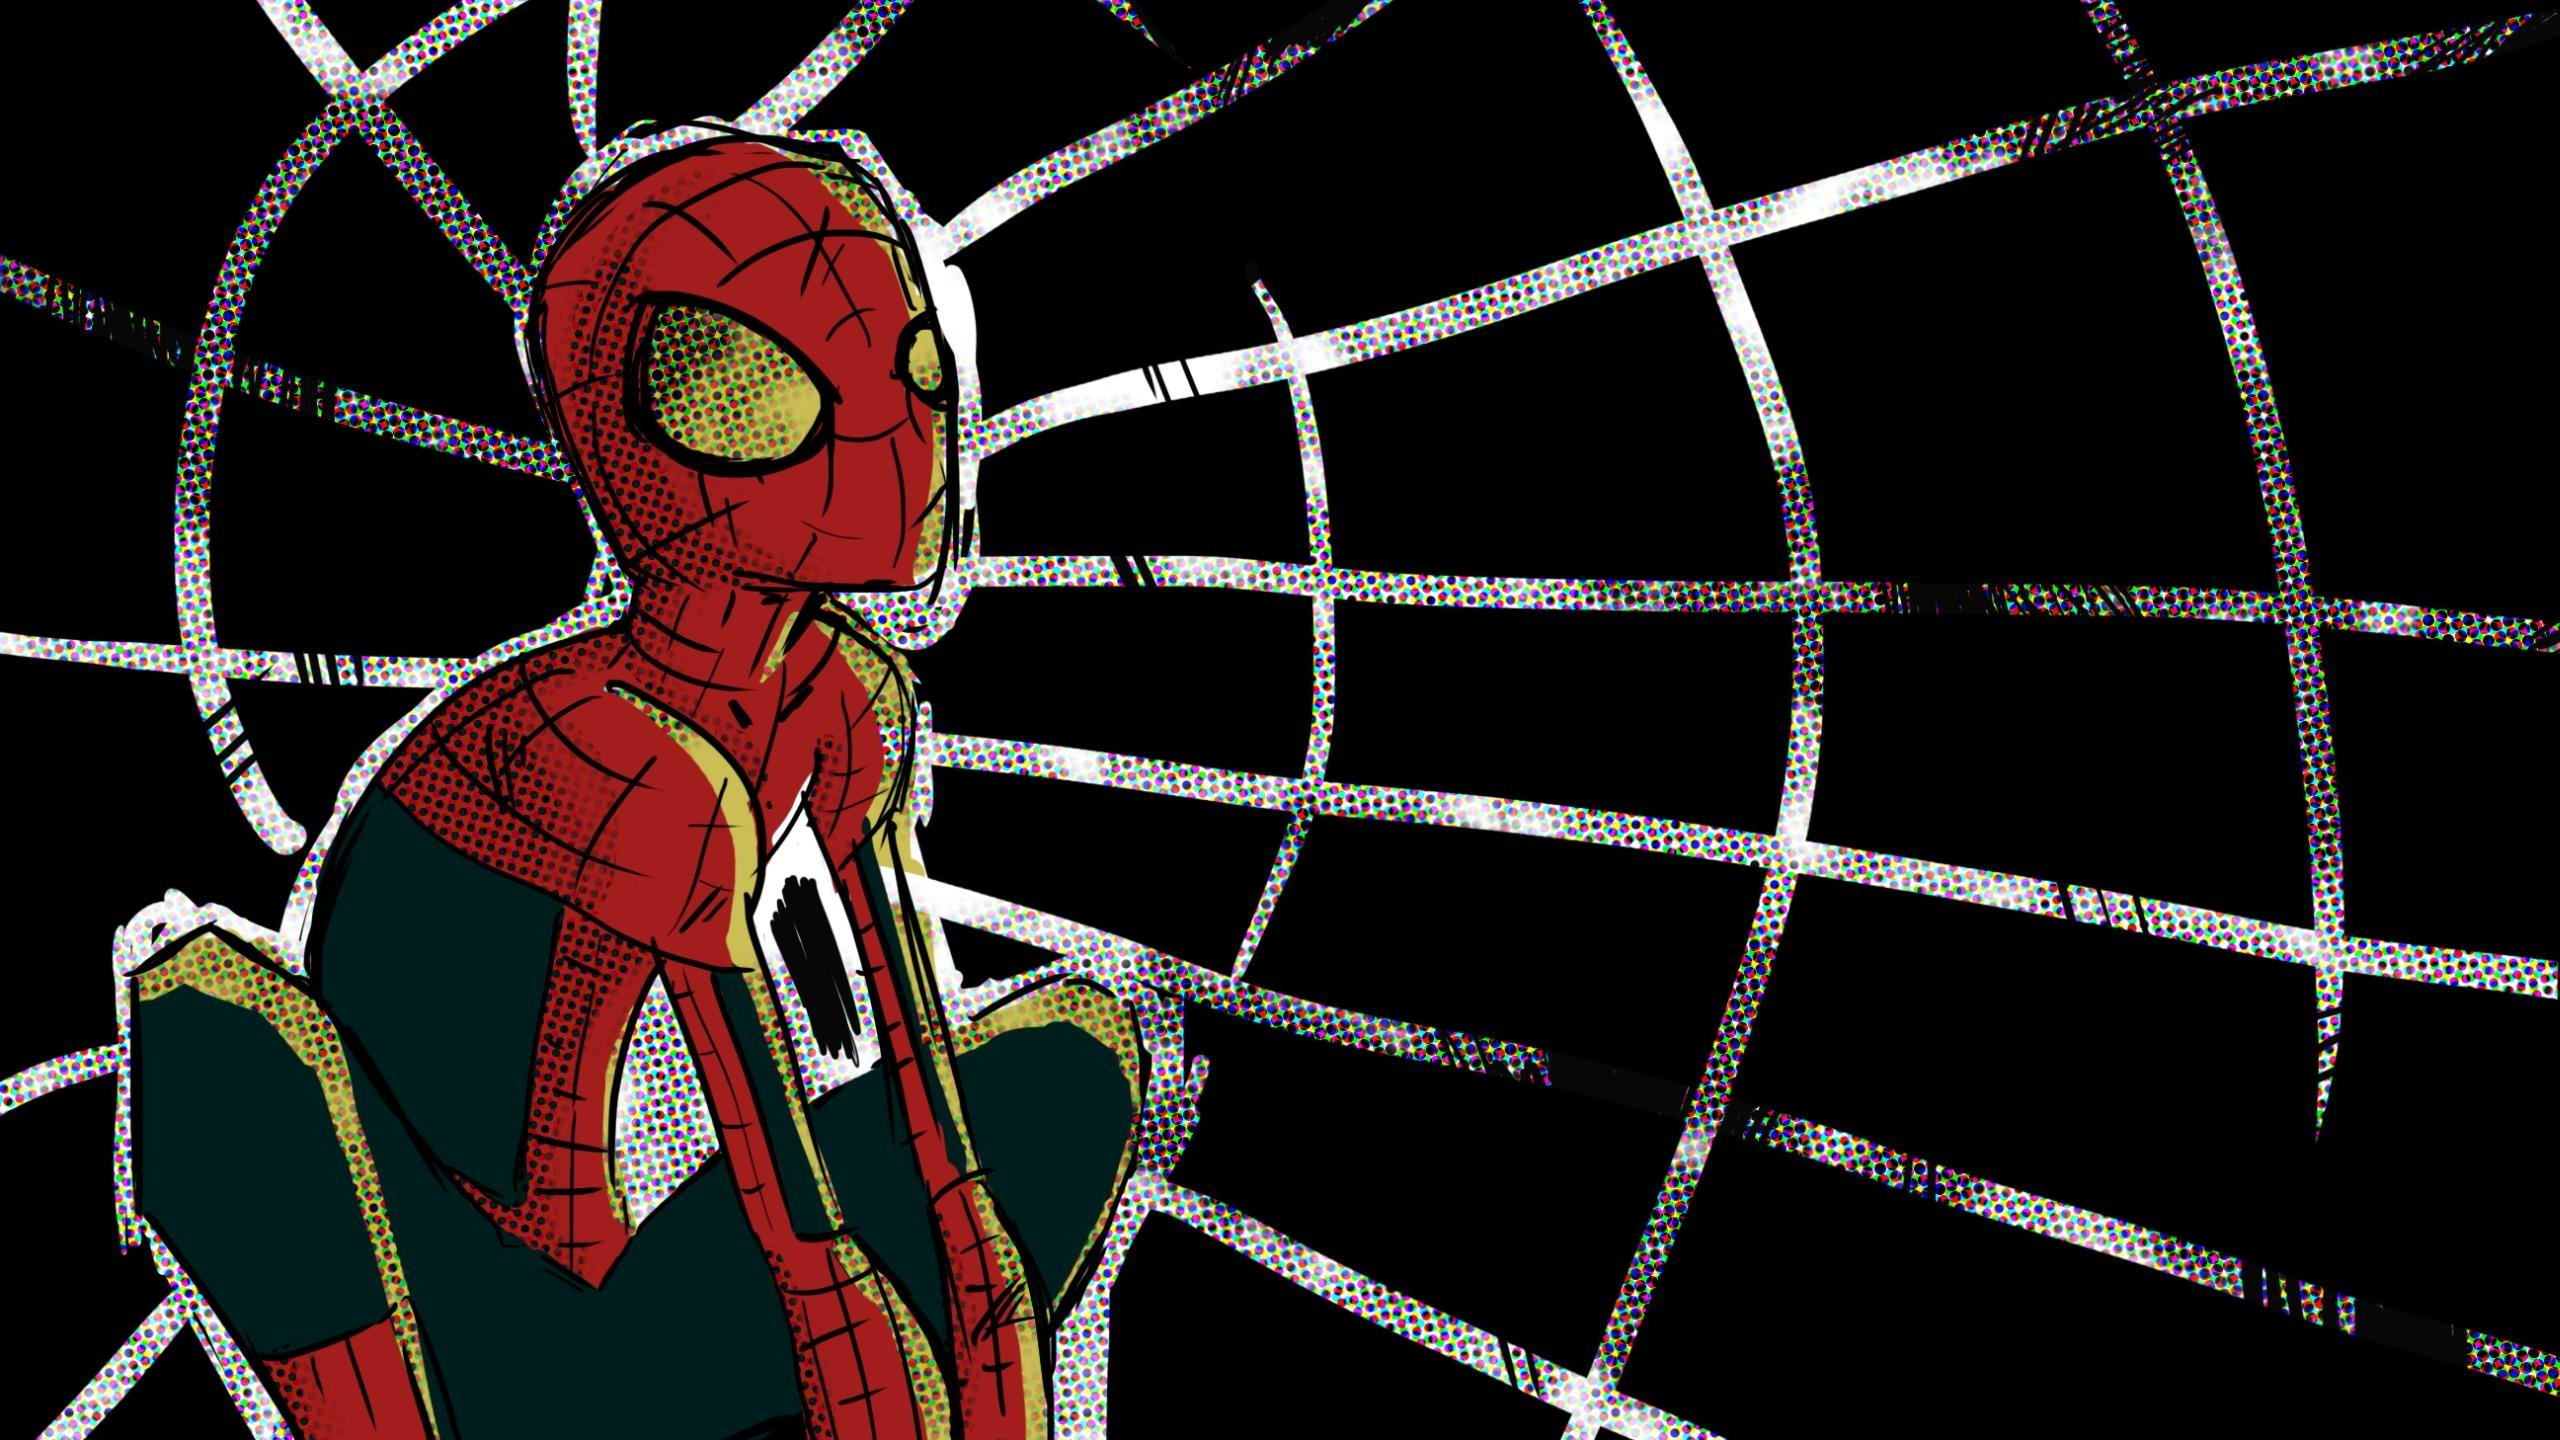 Download Hd 2560x1440 Spider Man Computer Wallpaper Id 104620 For Free